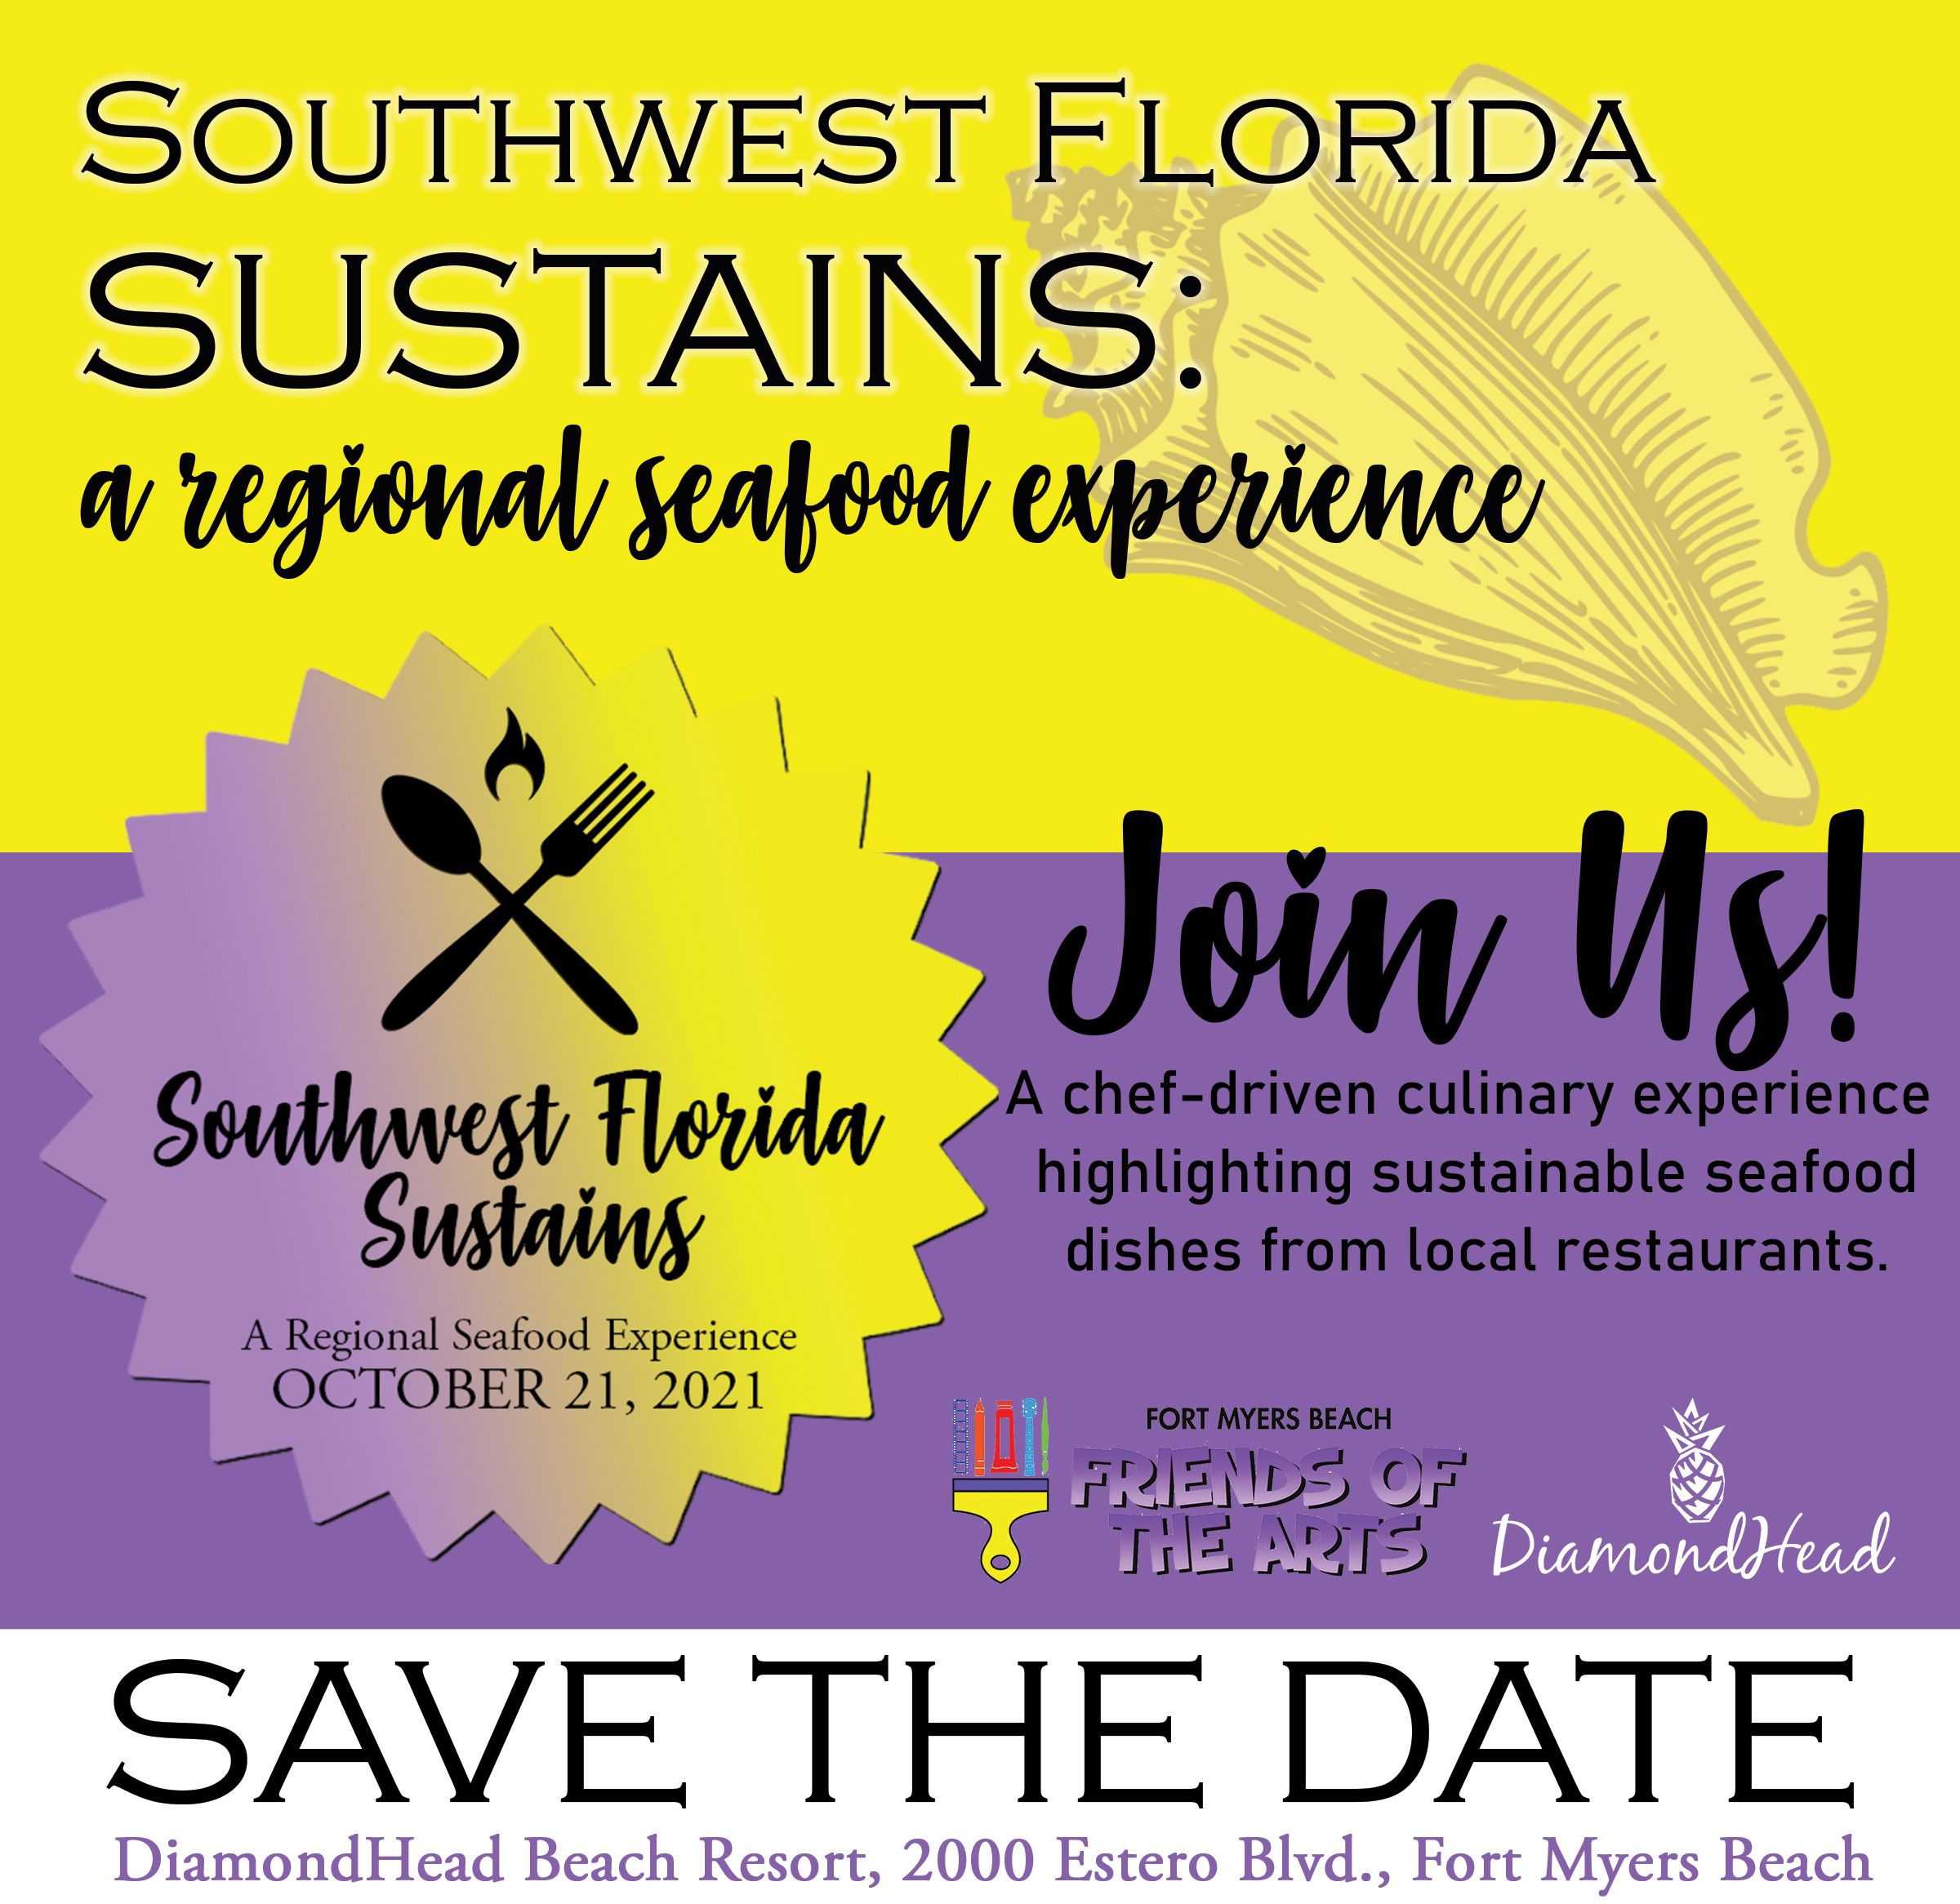 swfl sustains-web-save the date